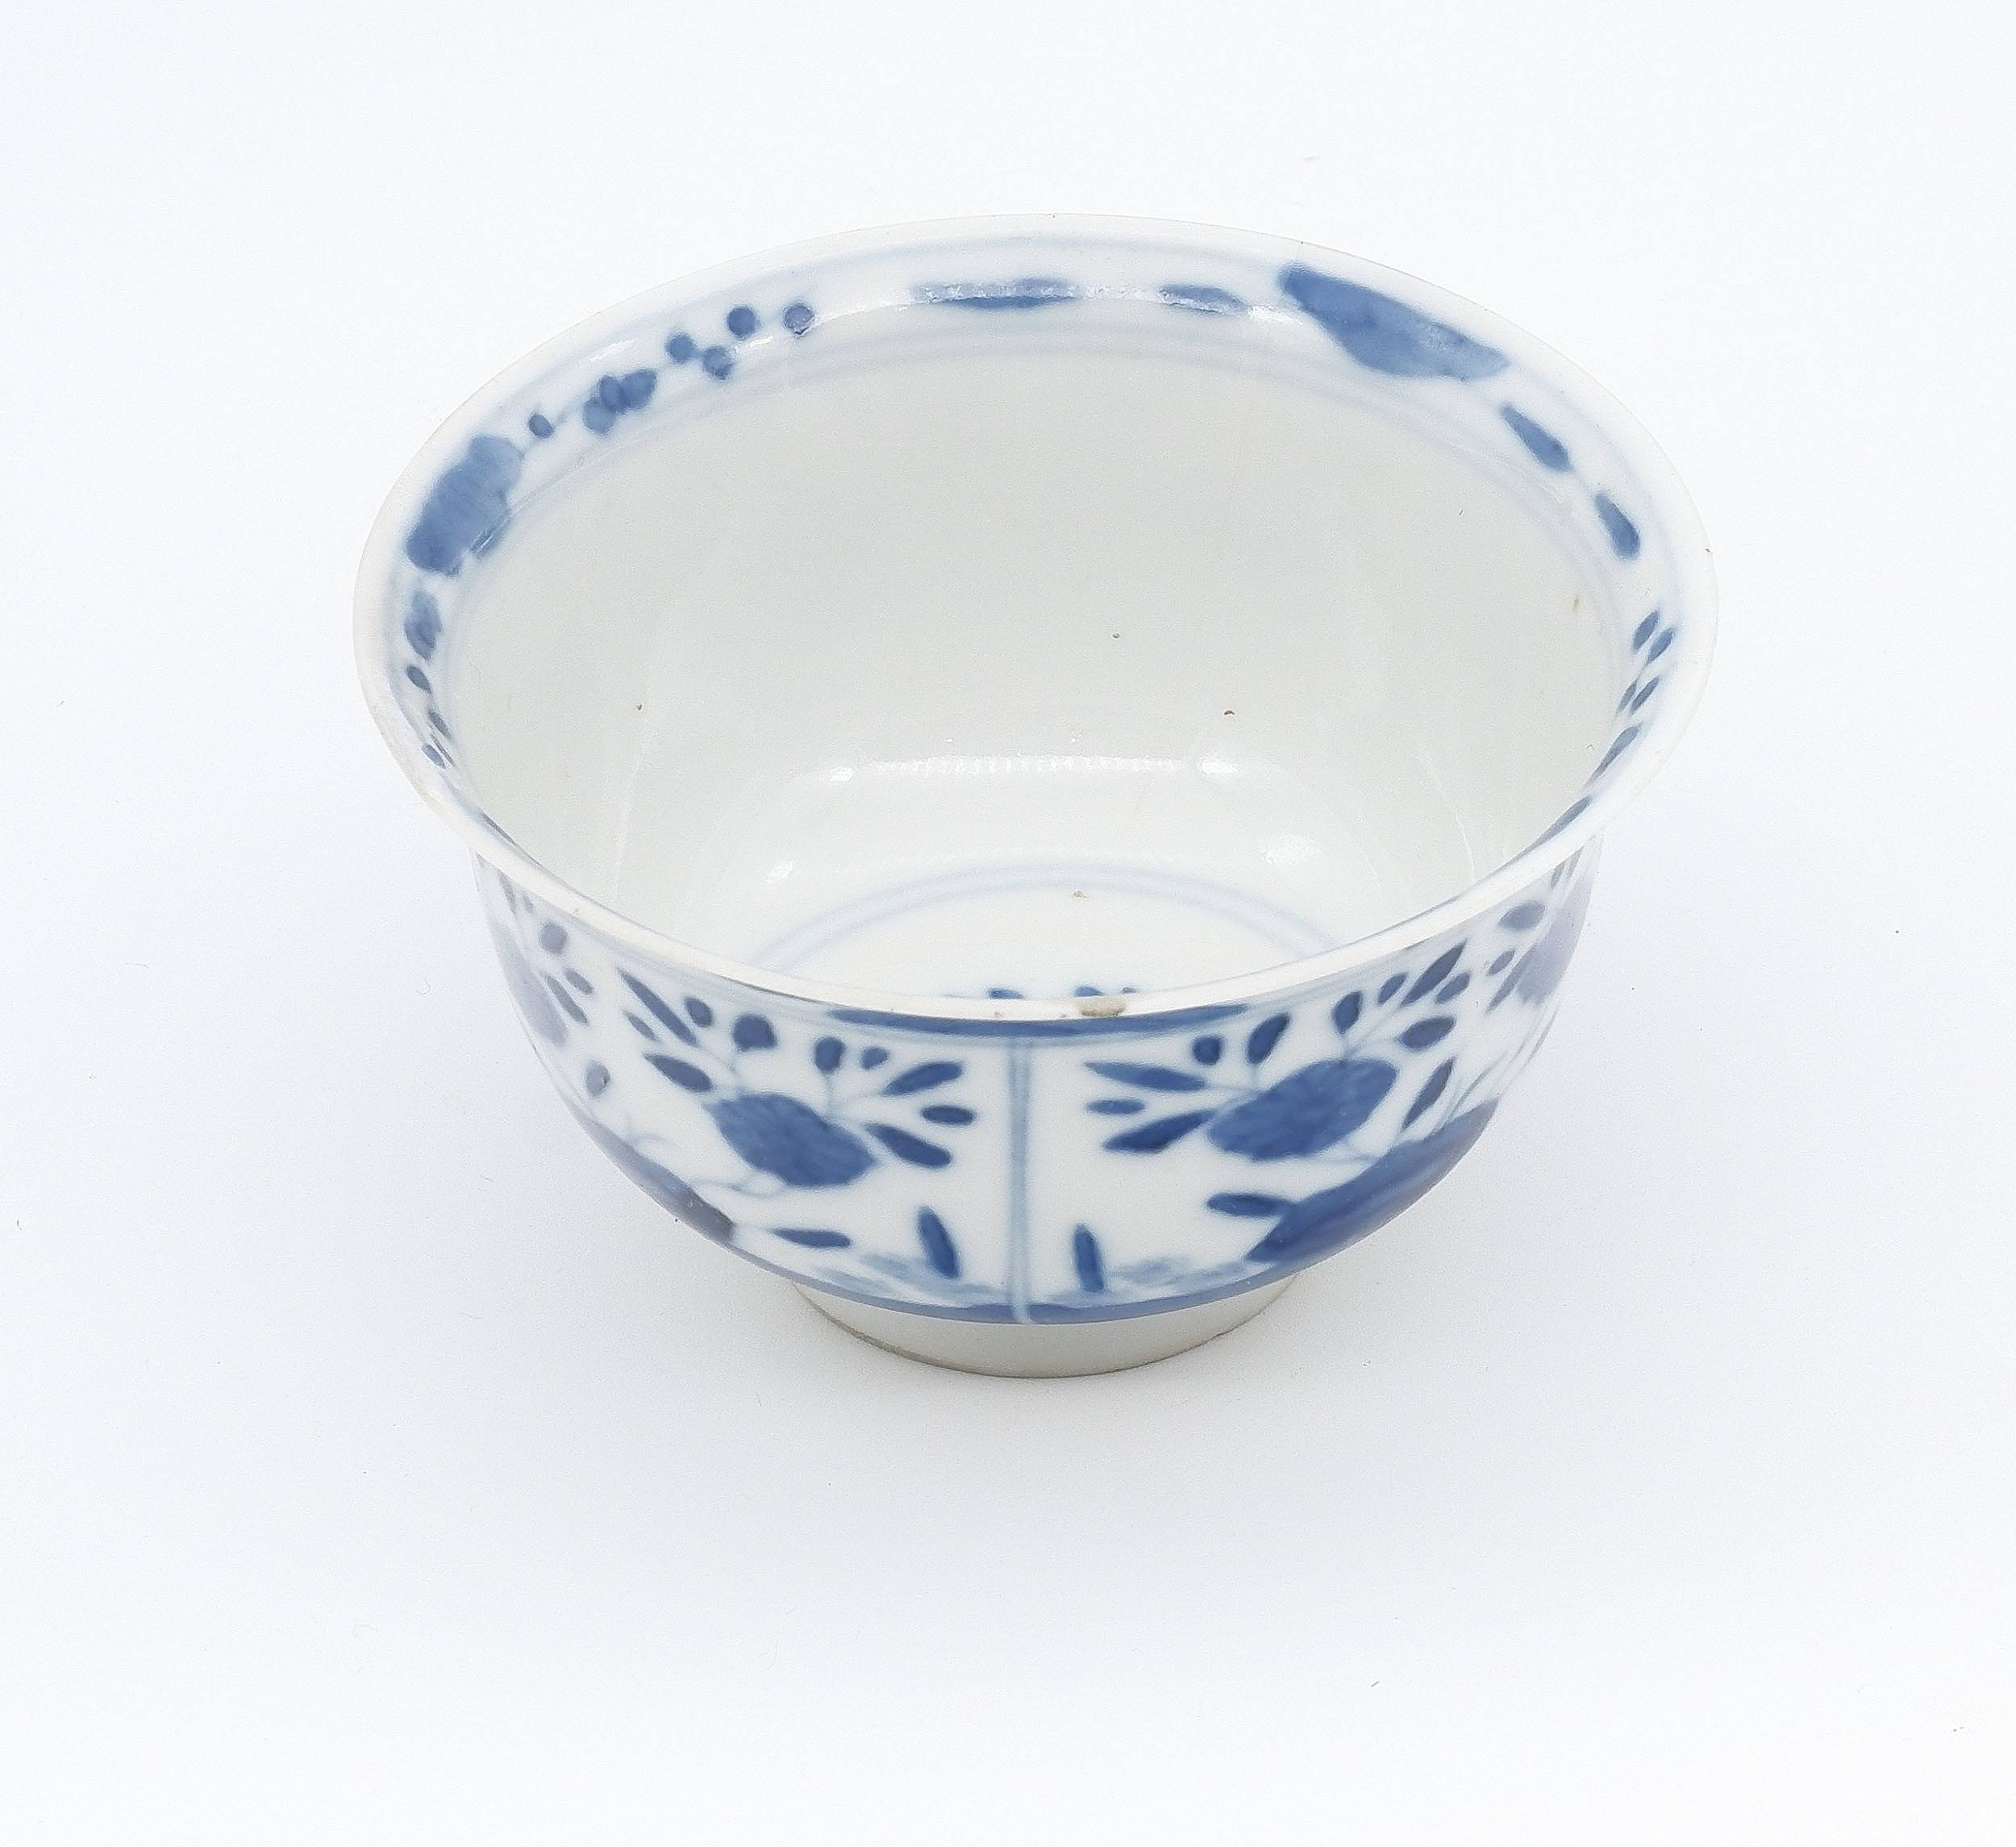 'Small Chinese Blue and White Teabowl, Kangxi Period 1662-1722'